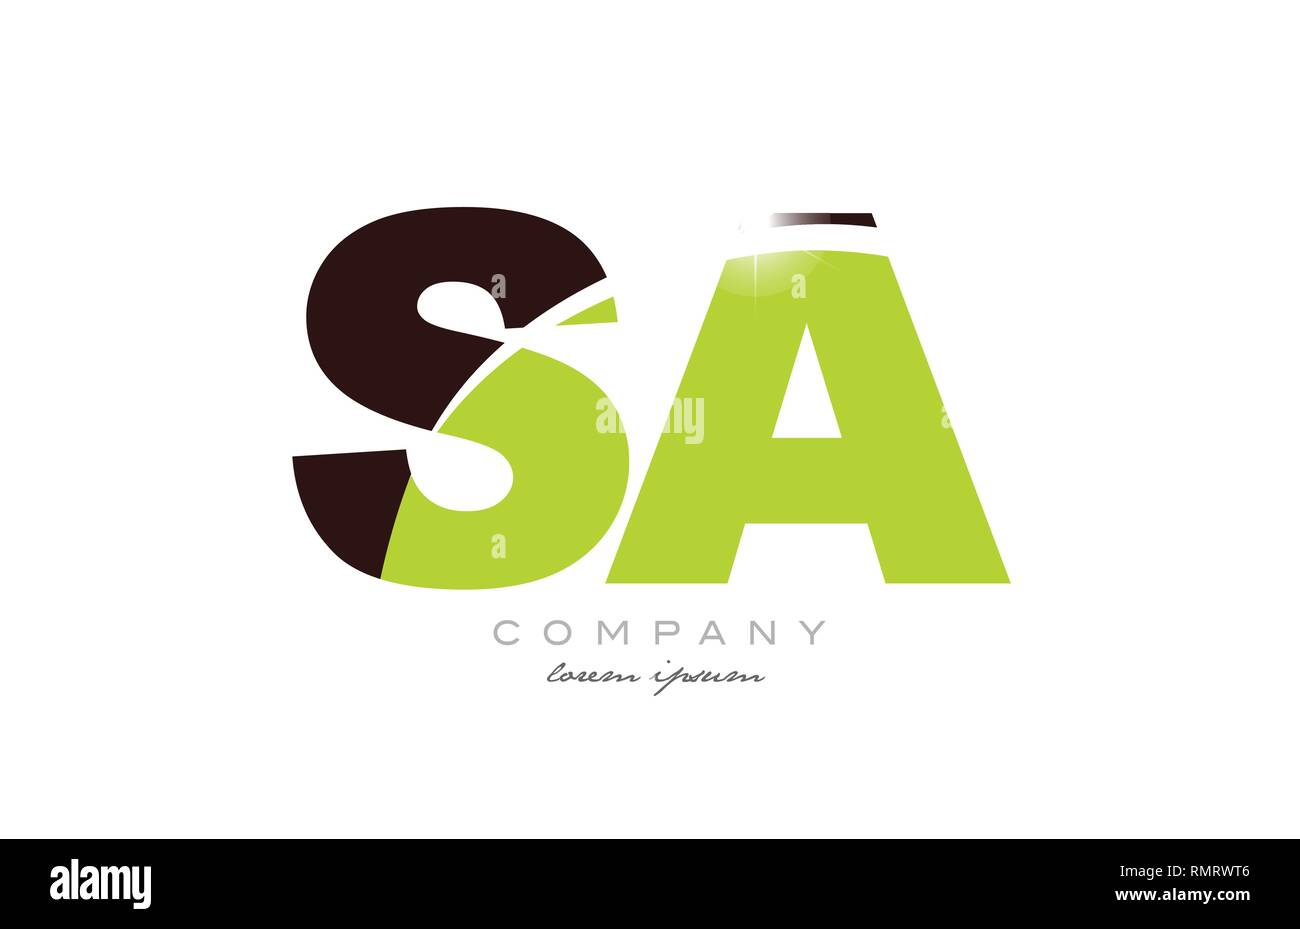 letter sa s a alphabet combination logo icon design with green and brown color suitable for a company or business - Stock Vector